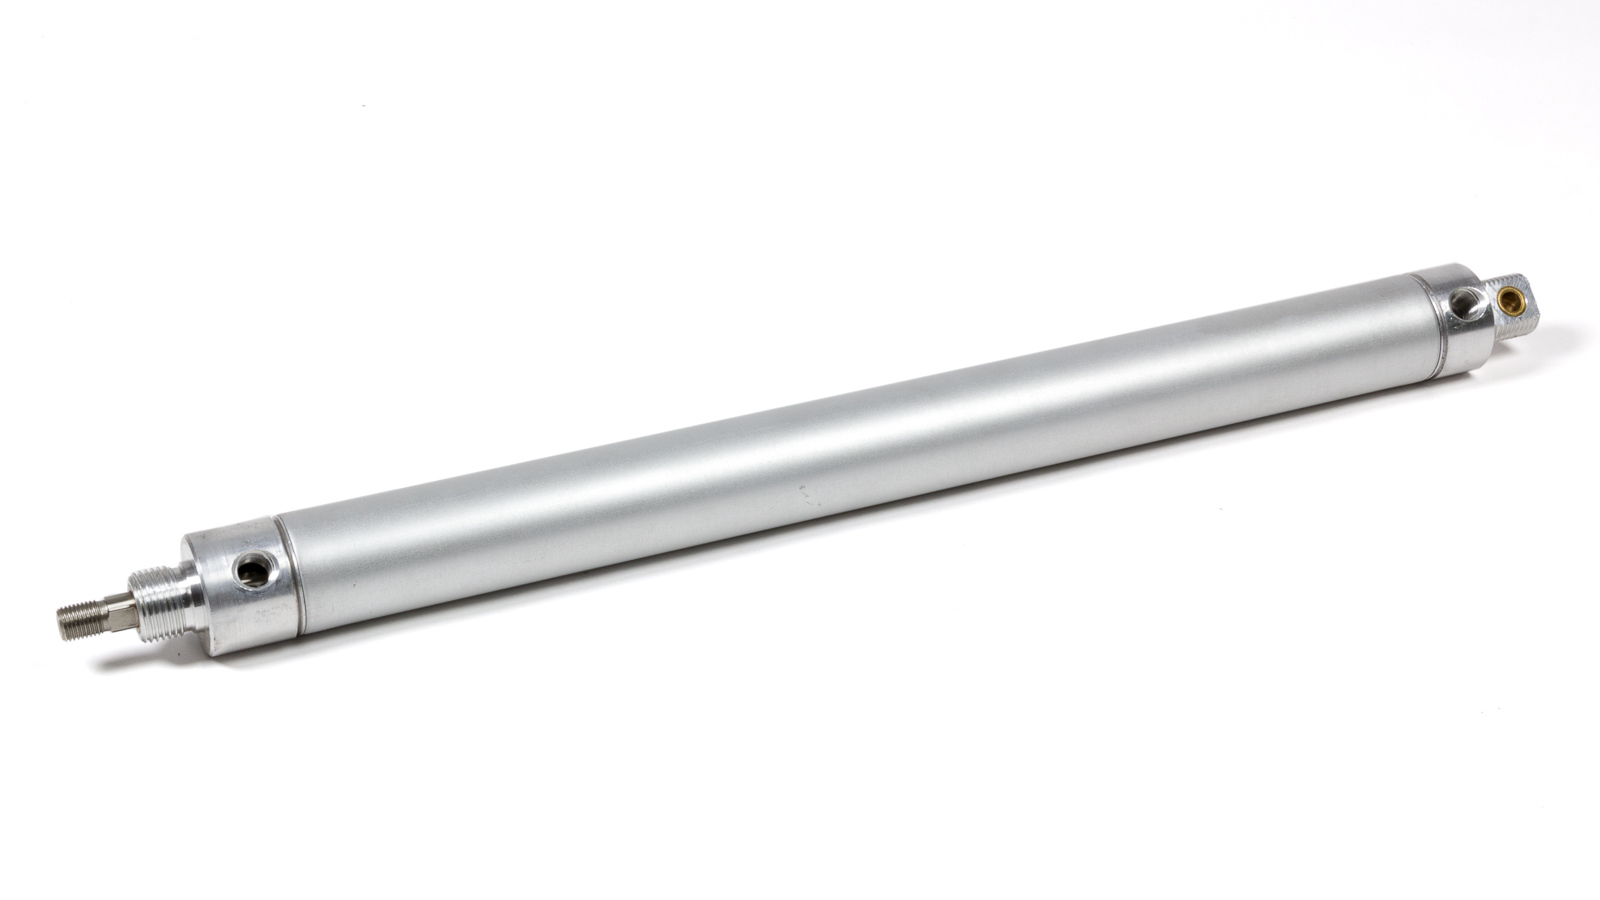 King Racing Products Aluminum Wing Ram 12in 3/8 Shaft